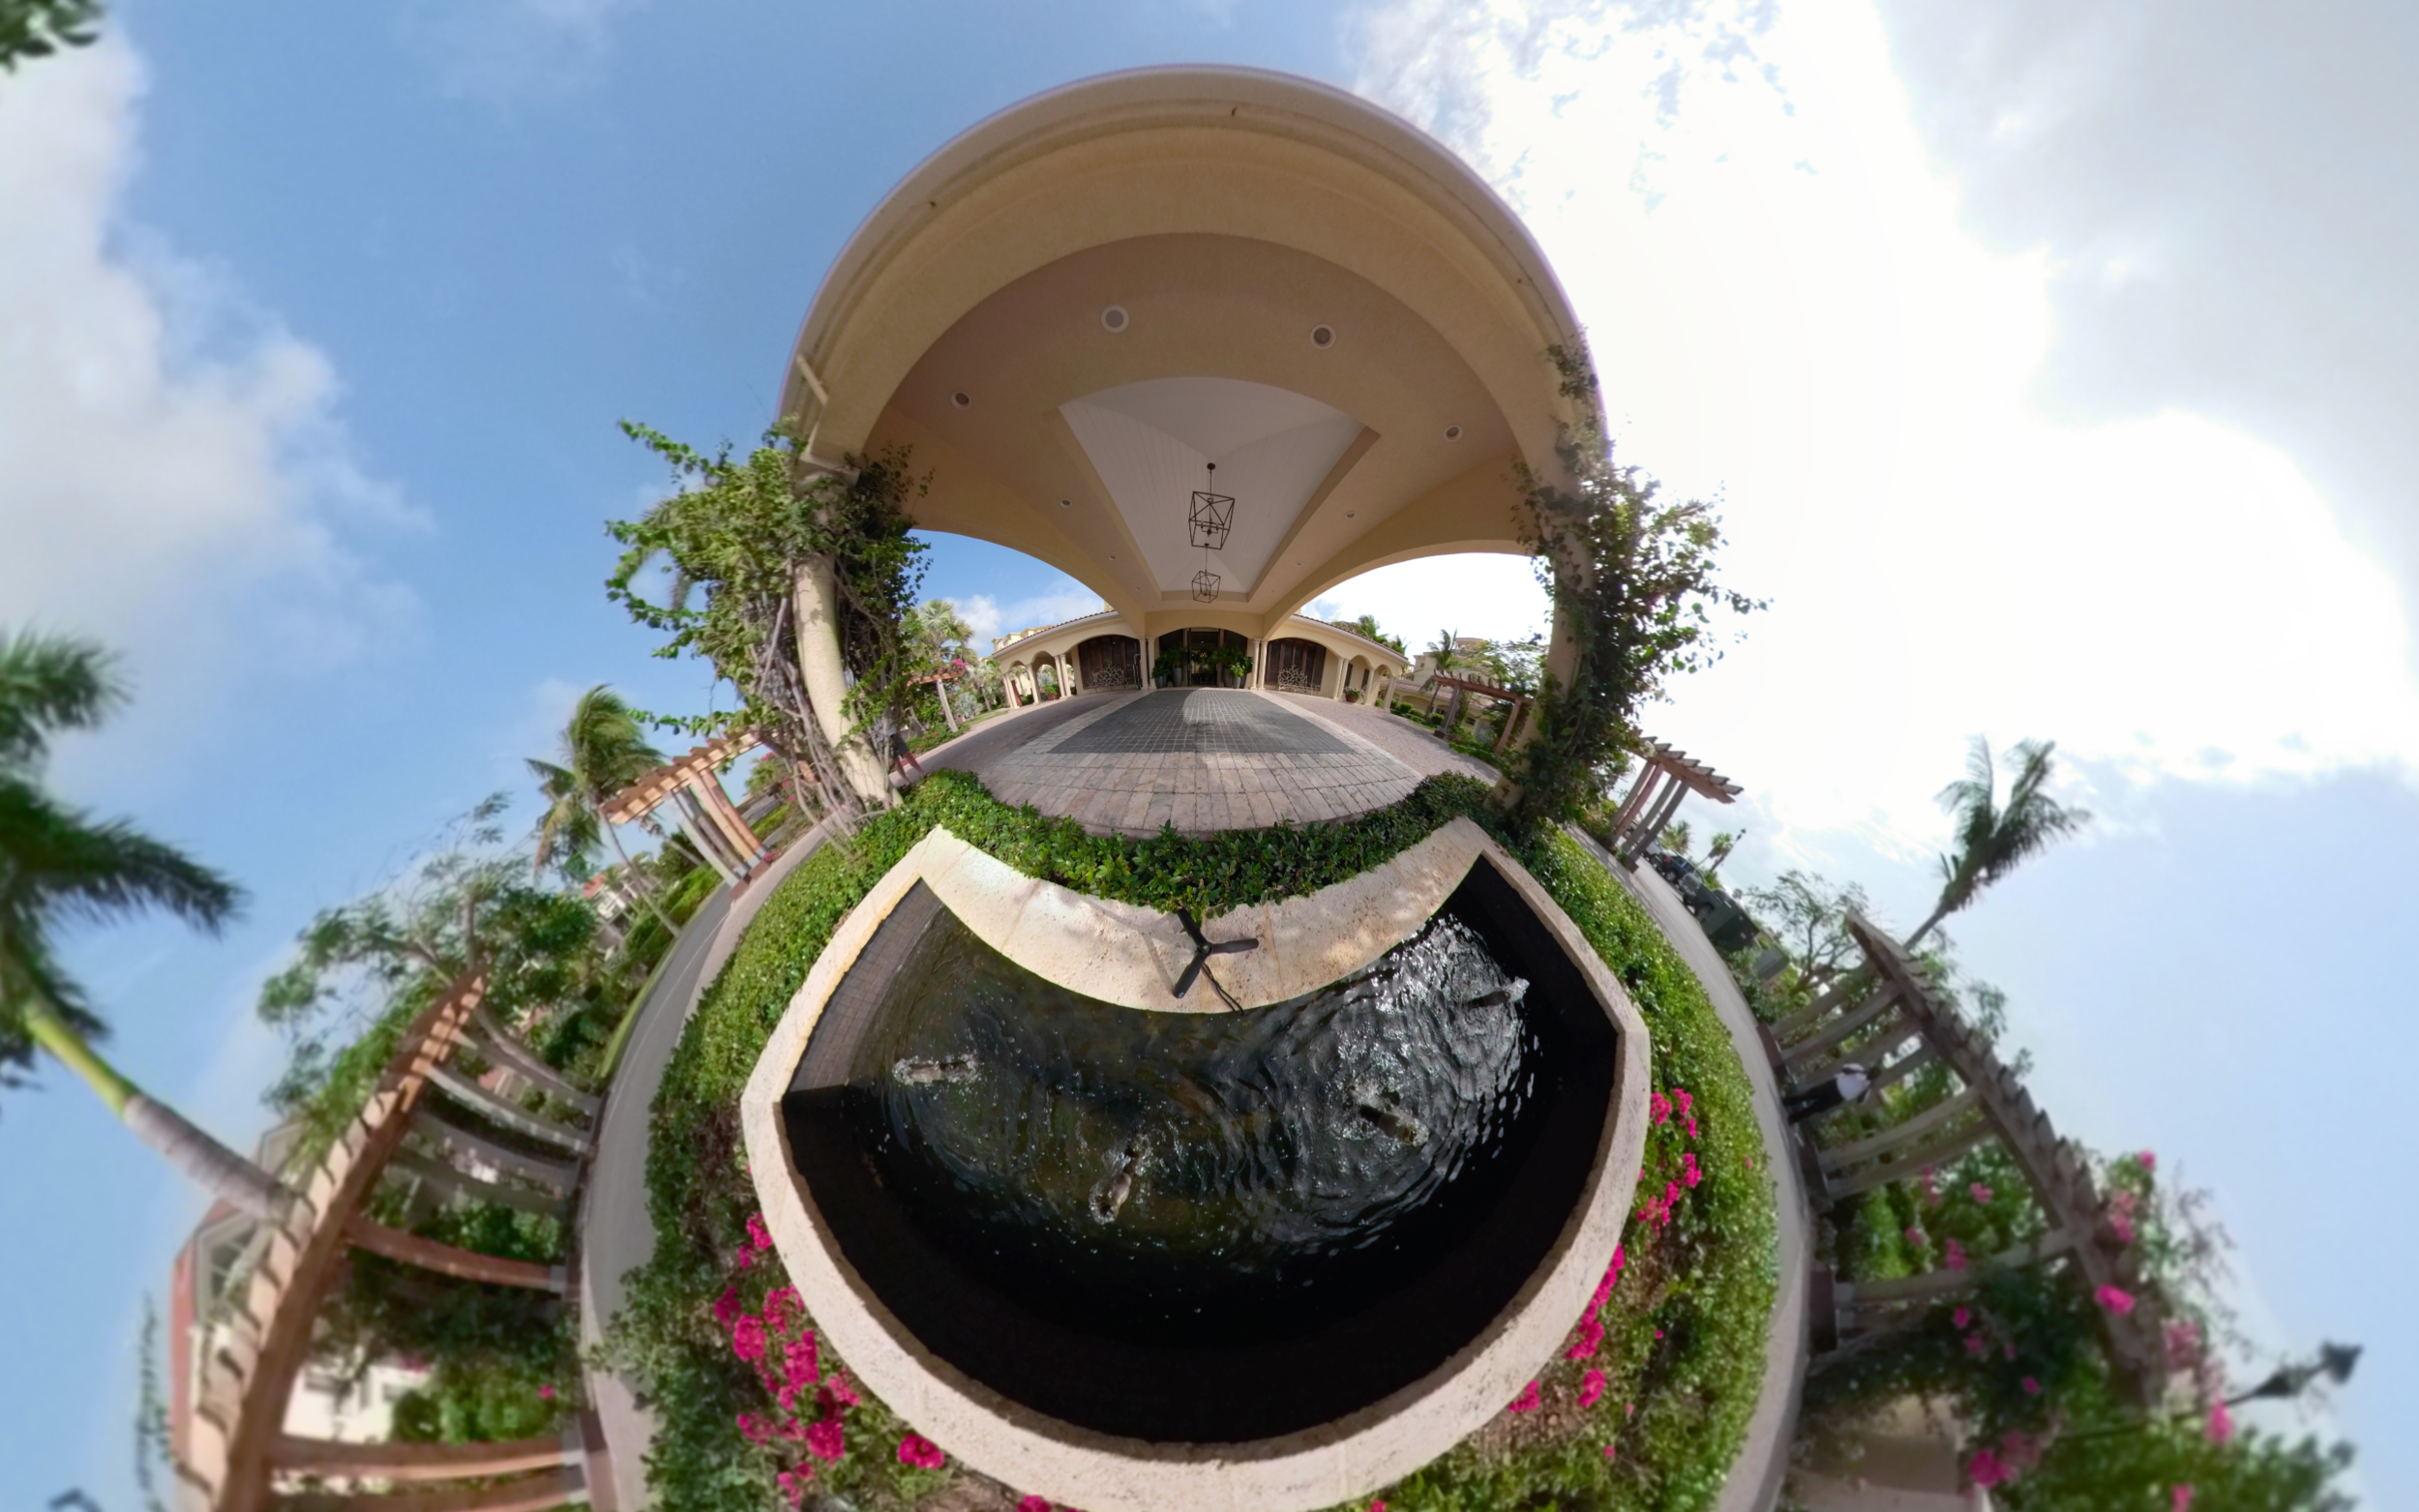 Grace Bay, Turks and Caicos, Entrance - Click for VR 360